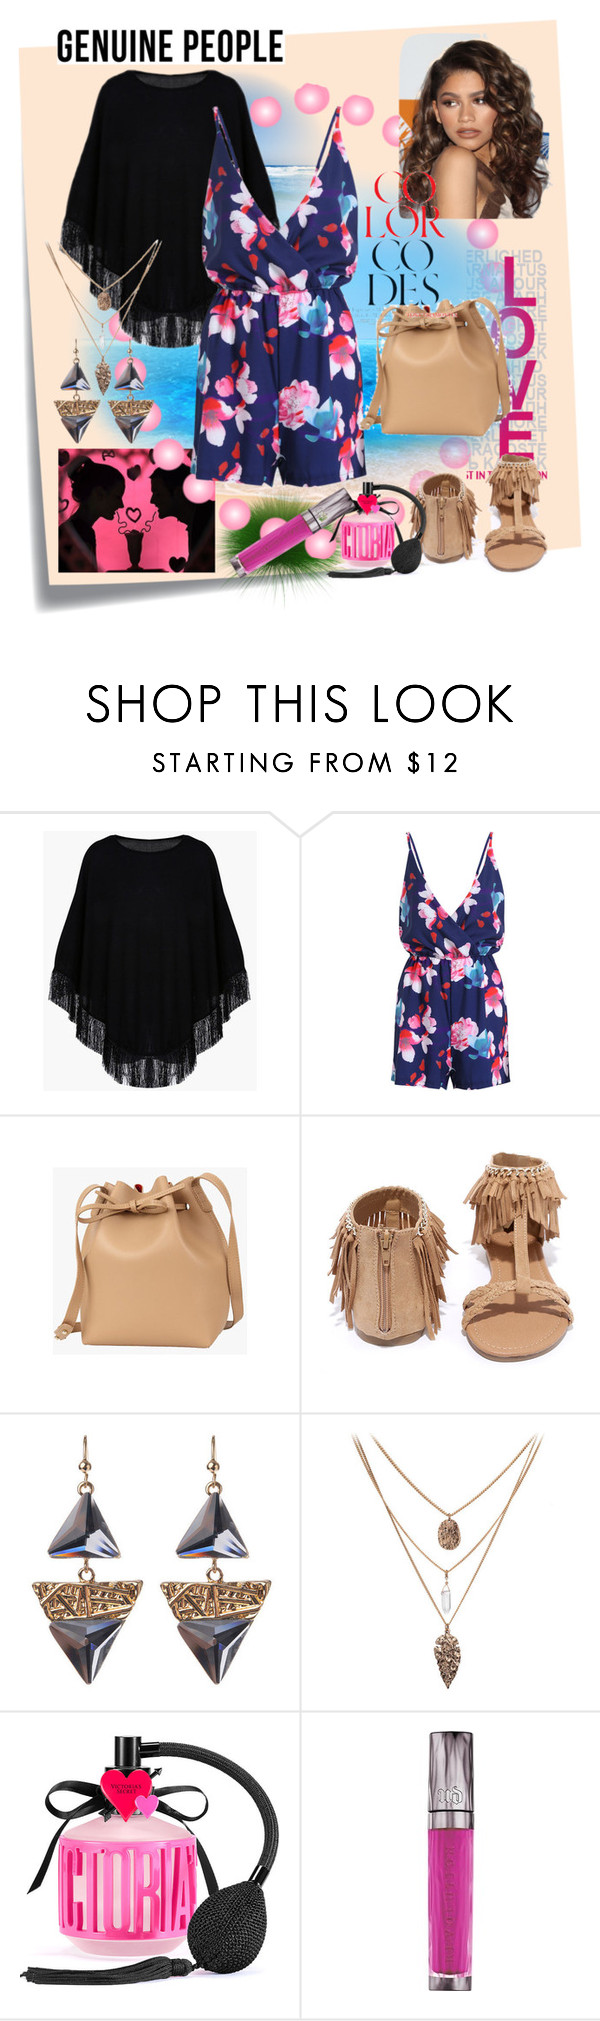 """""""Genuine people"""" by azemina-moda ❤ liked on Polyvore featuring Post-It, Coleman, Qupid, Victoria's Secret, Urban Decay and Genuine_People"""